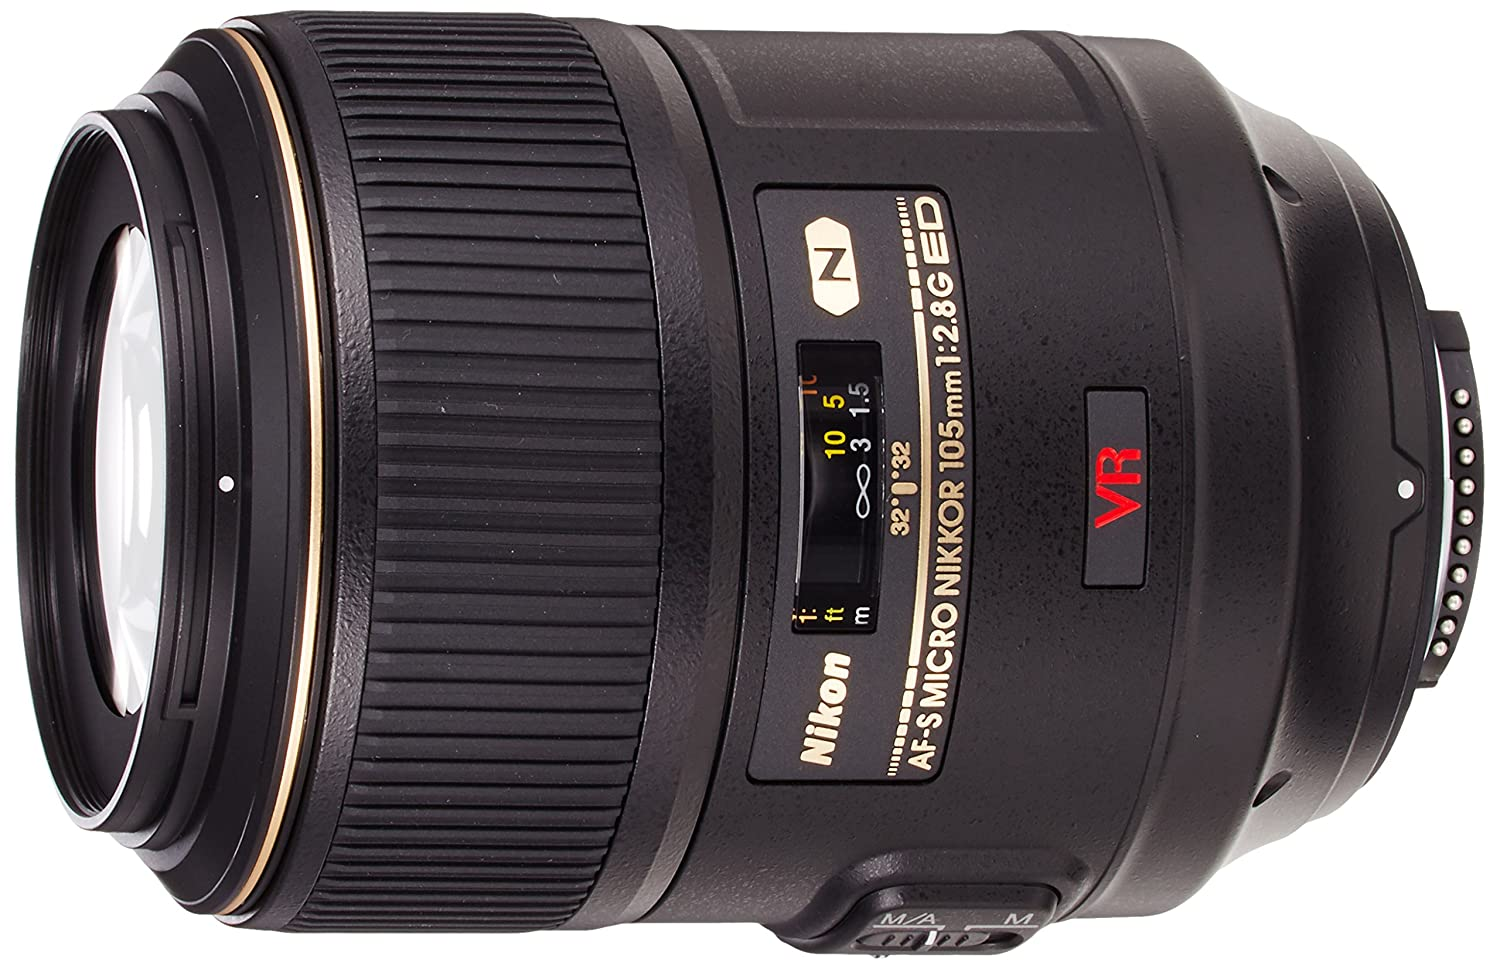 Nikon 105mm AF-S VR 105 f/2.8G IF-ED Micro Prime Lens for